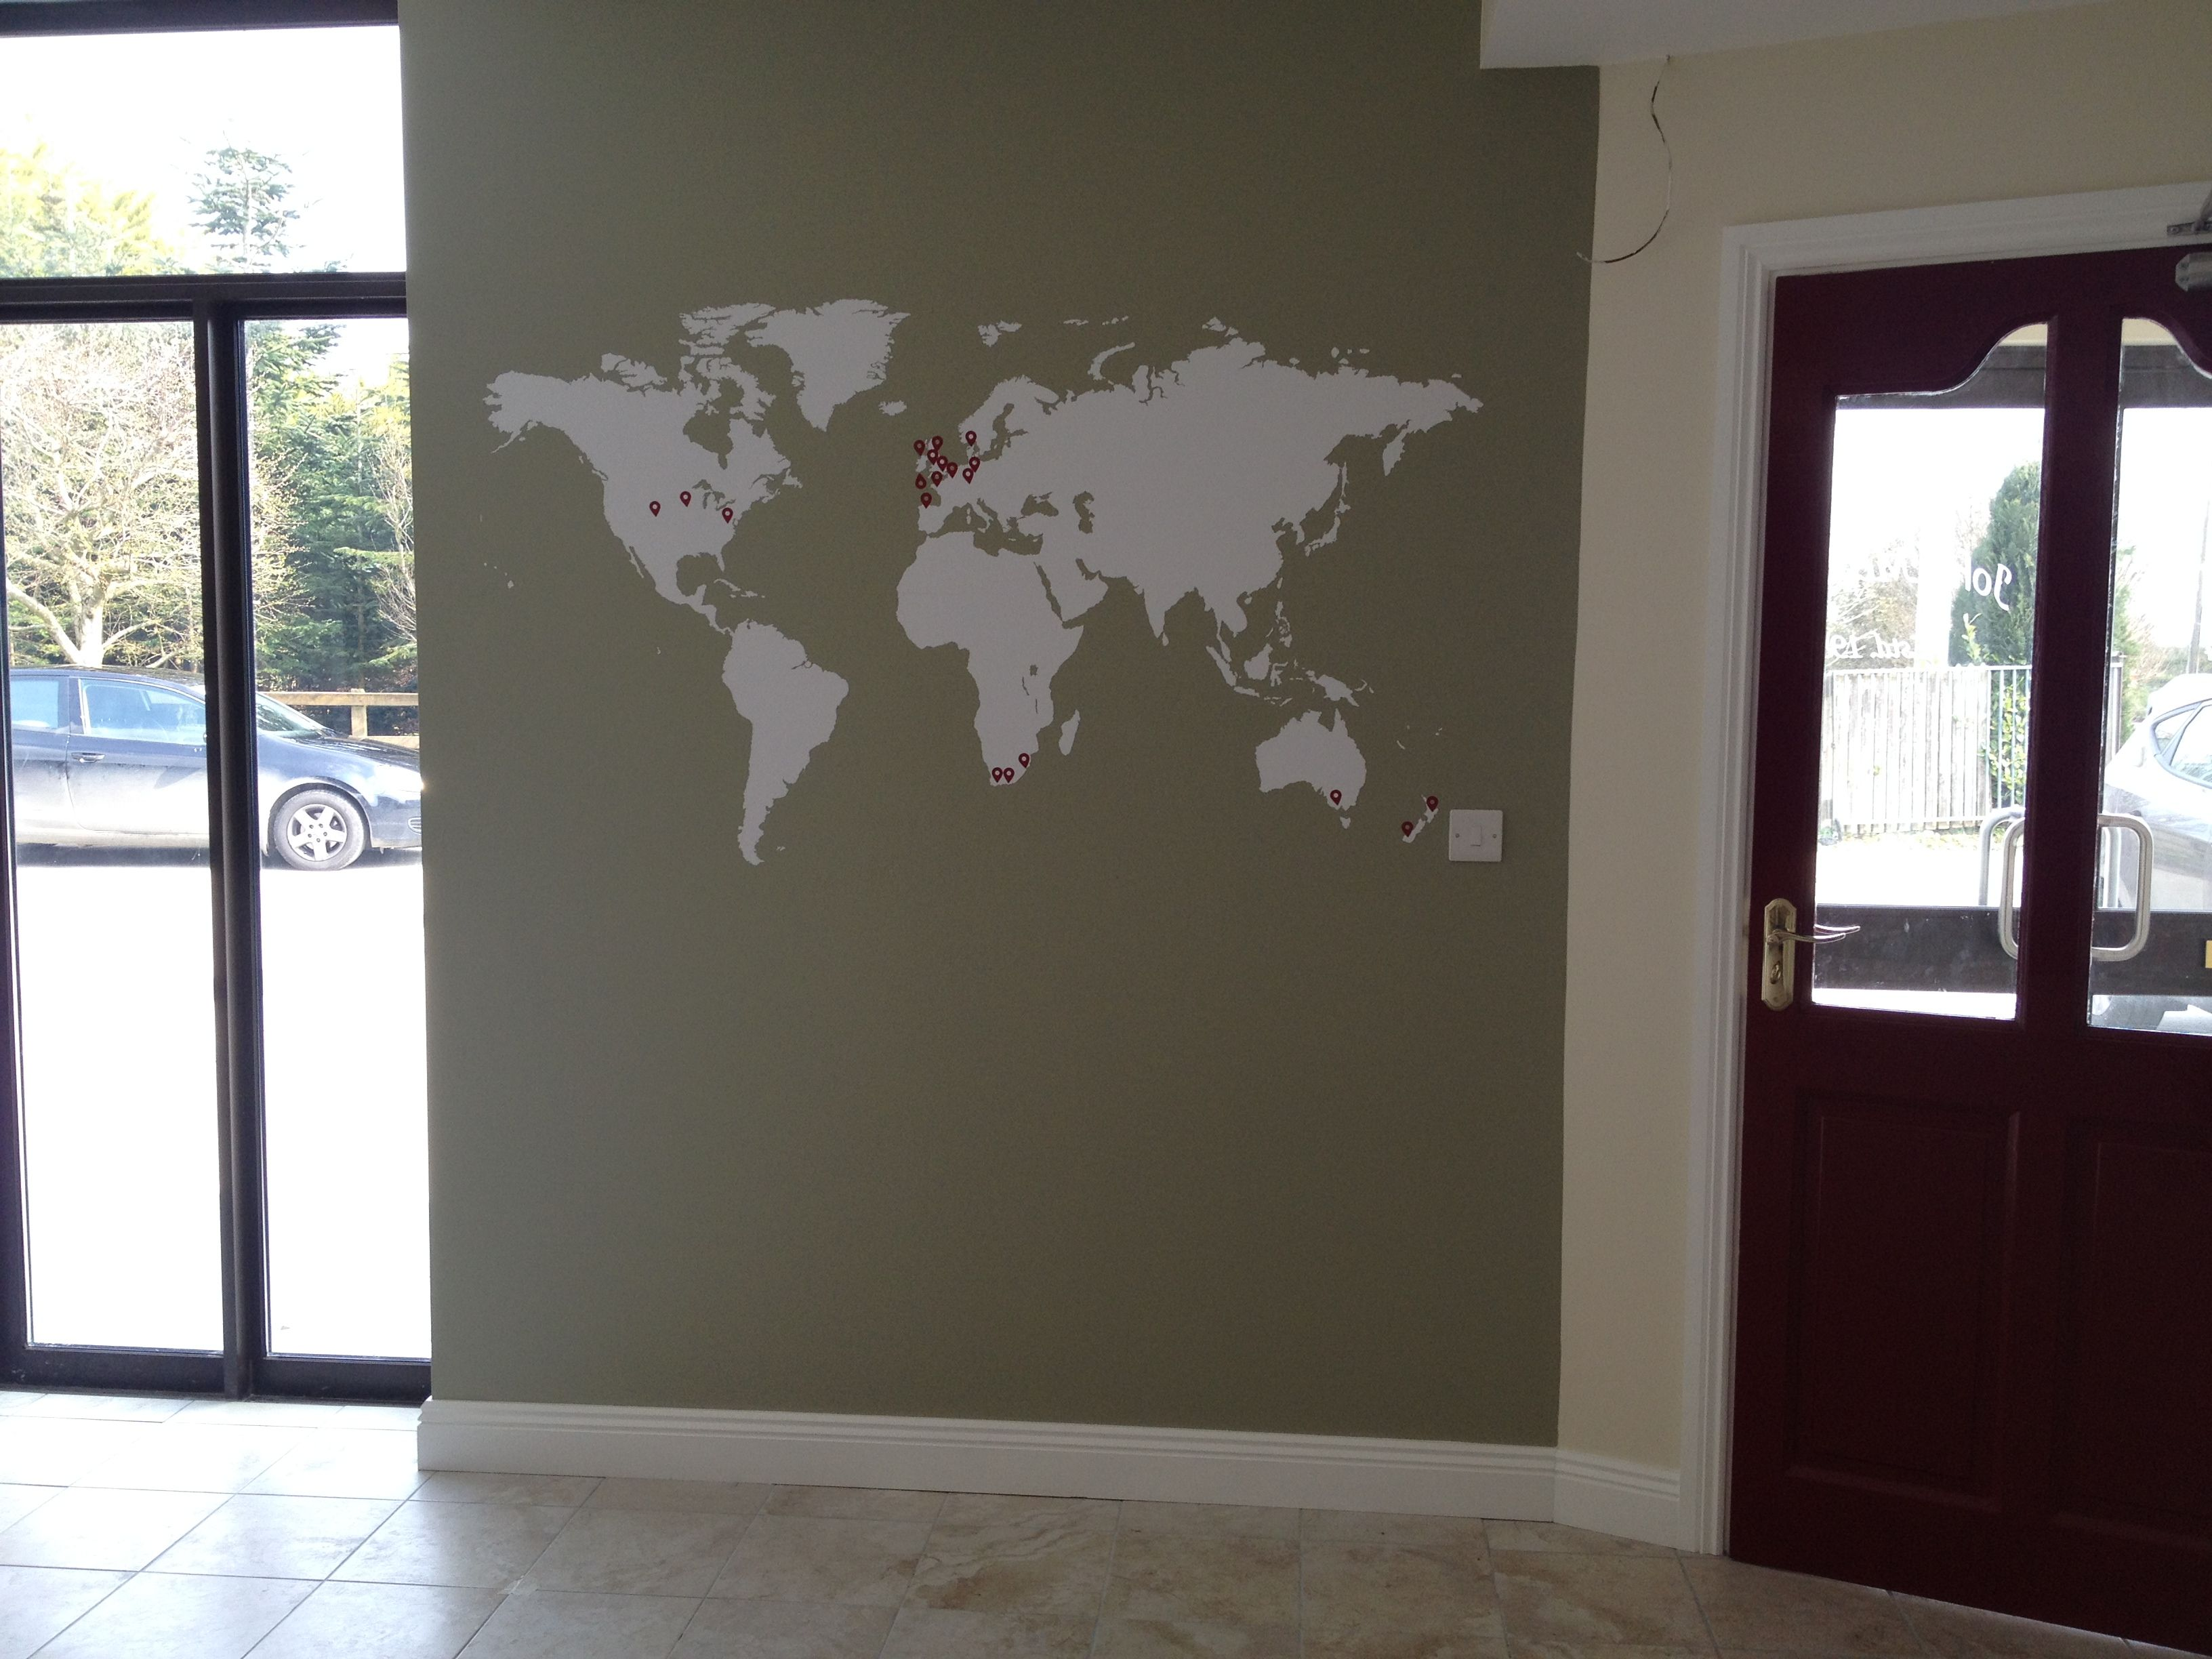 World map vinyl wall sticker wall sticker vinyl wall stickers and world map vinyl wall sticker gumiabroncs Image collections